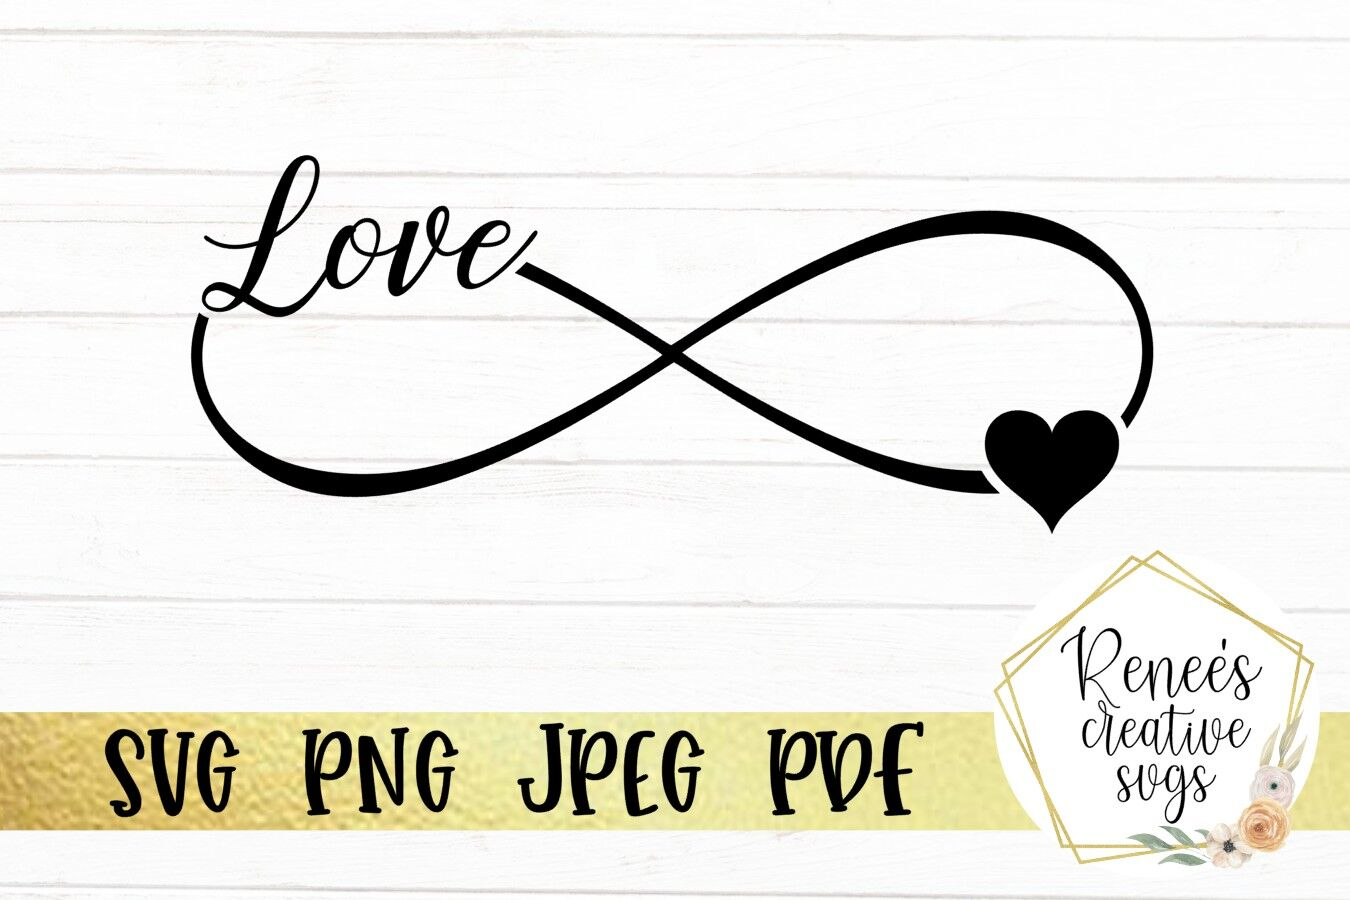 Infinity Love Svg By Renee S Creative Svg S Thehungryjpeg Com